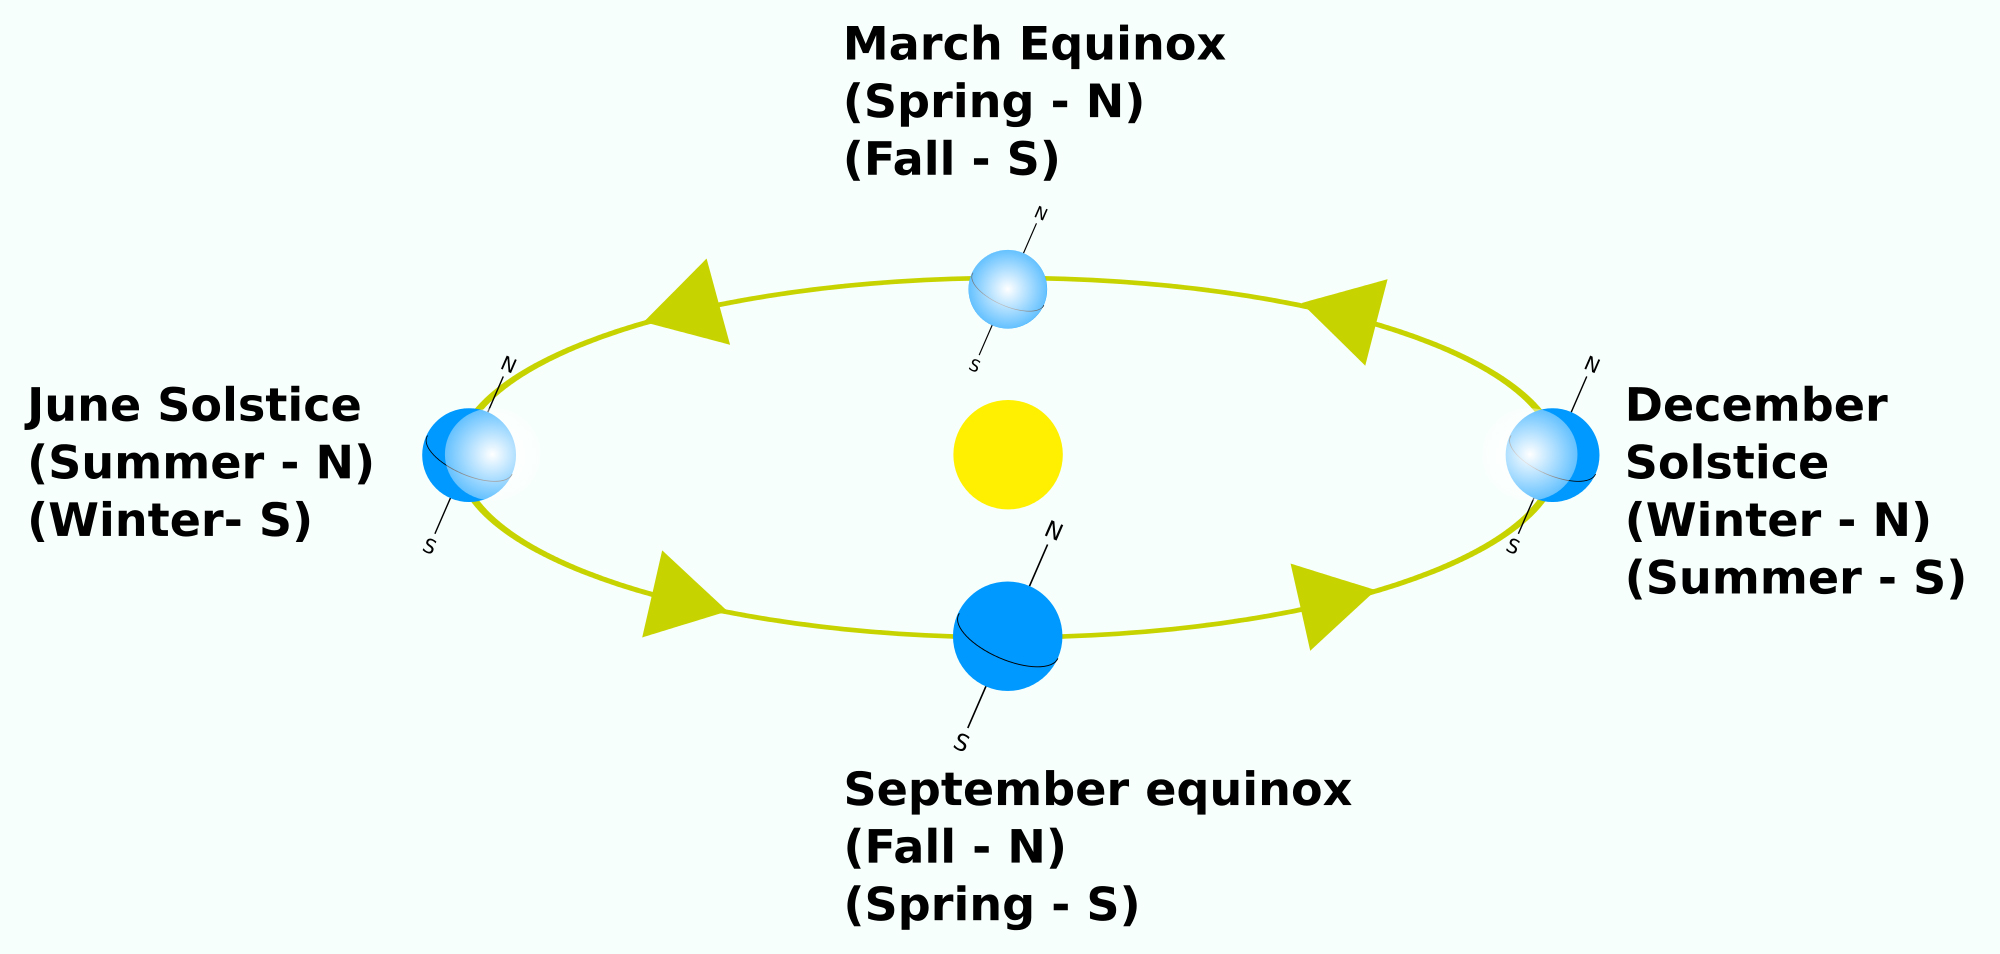 Illustration shows the relative positions and timing of solstice, equinox and seasons in relation to the Earth's orbit around the sun, with equinox falling in the months of March and September while solstice is under June and December.